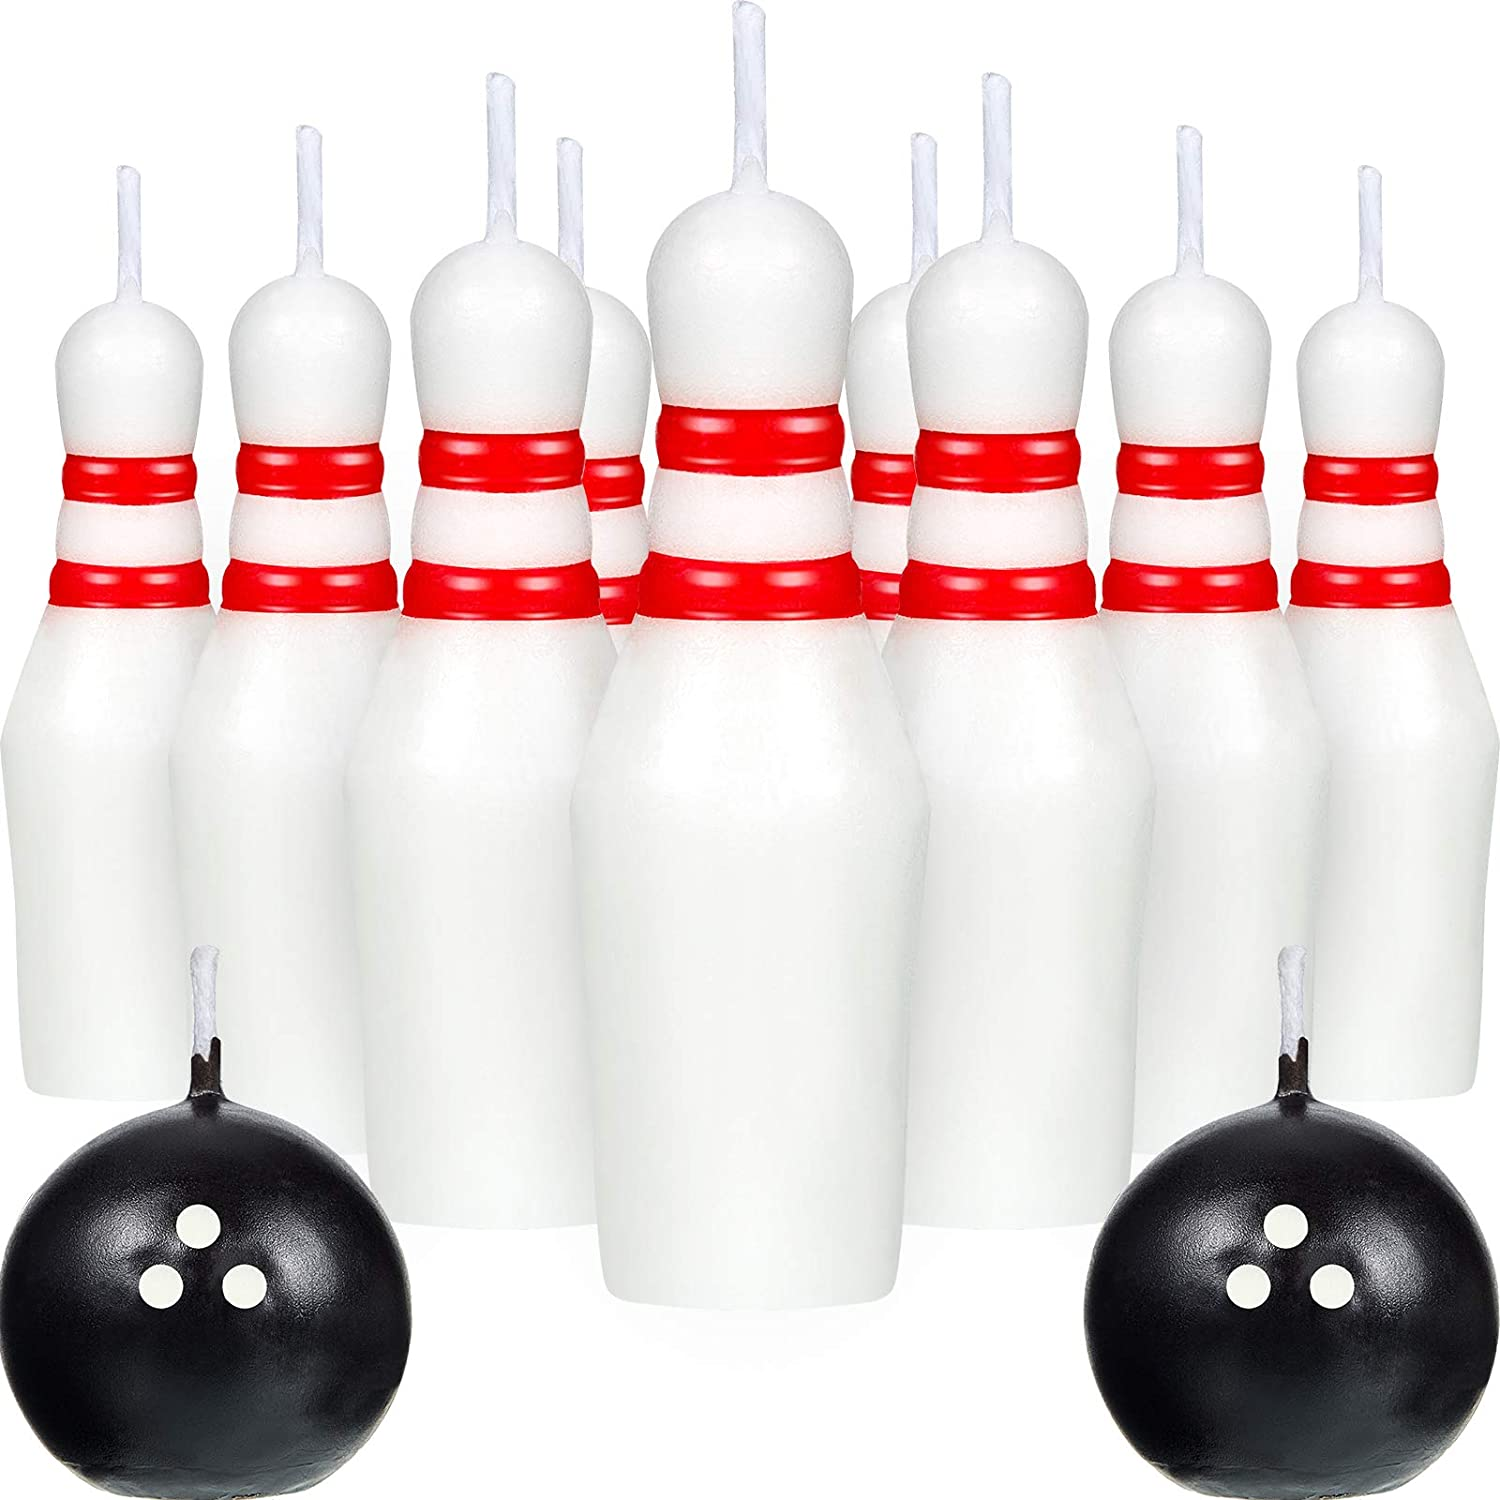 Bowling Candle Set, Including Ball Candles and Bowling Pins Candles Sports Cake Candles for Wedding Birthday Party Supply (14)